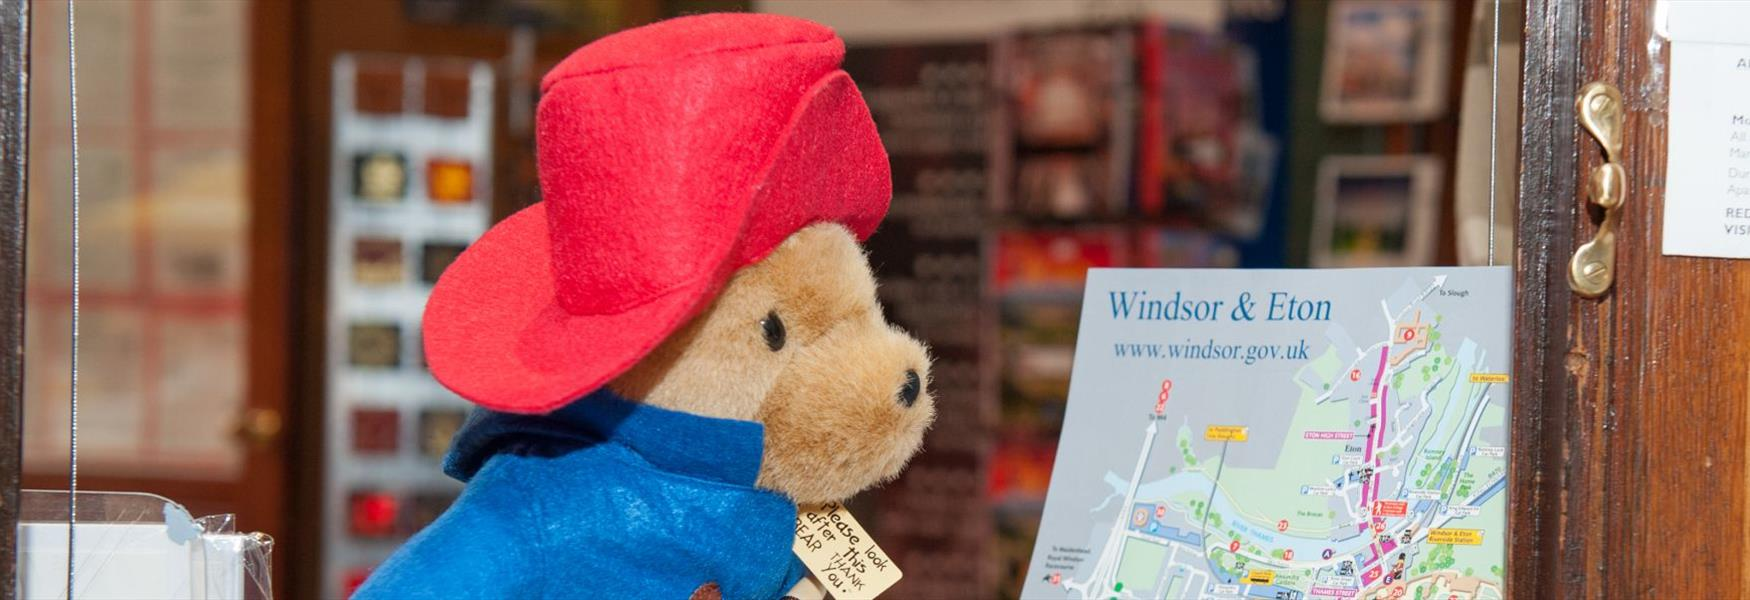 Paddington Bear found our free map invaluable!